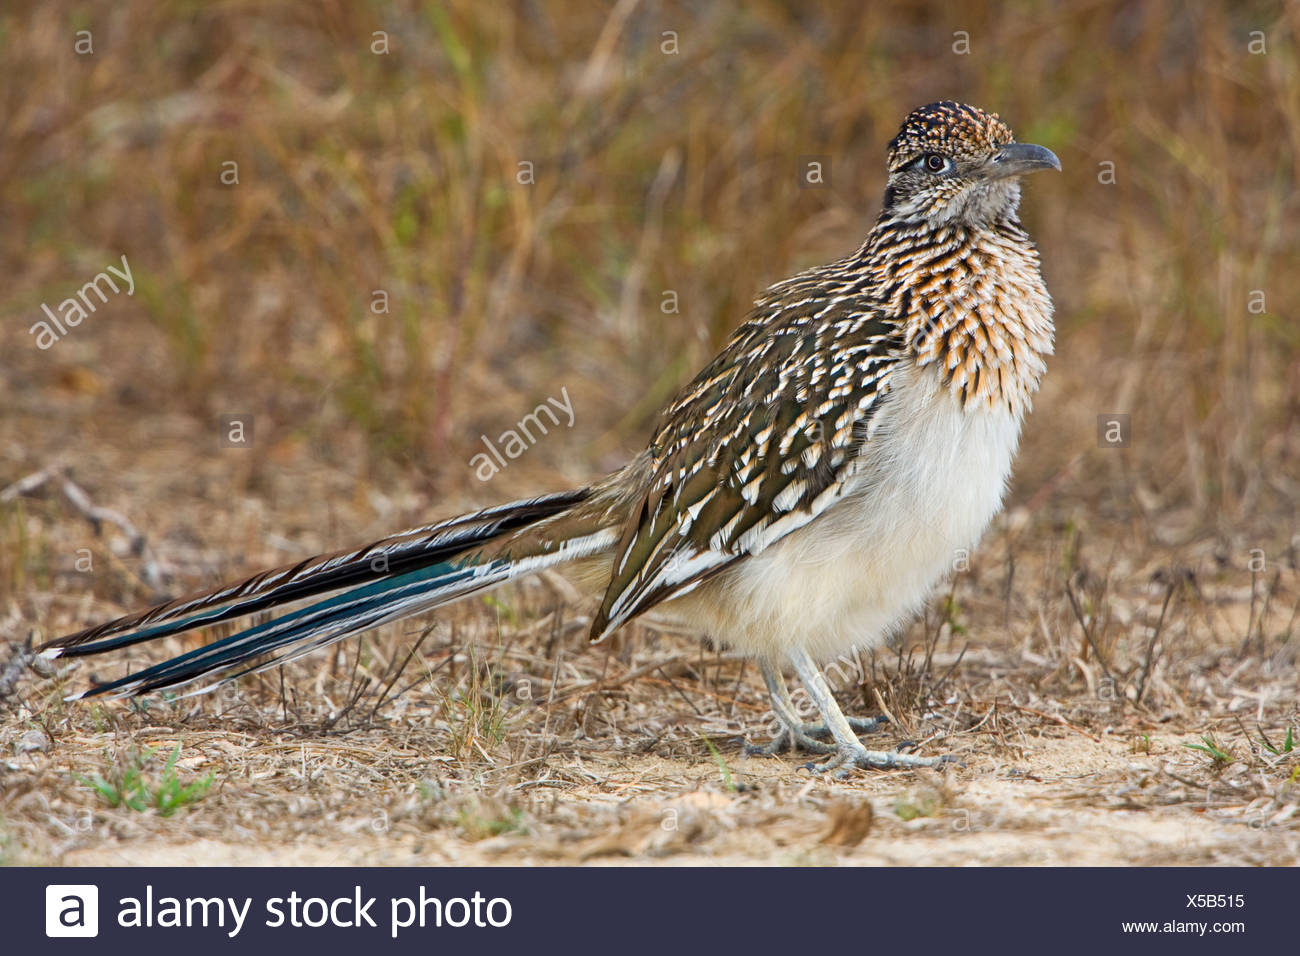 Greater Roadrunner (Geococcyx californianus) in a dry scrubland area of Falcon State Park, Texas, USA - Stock Image